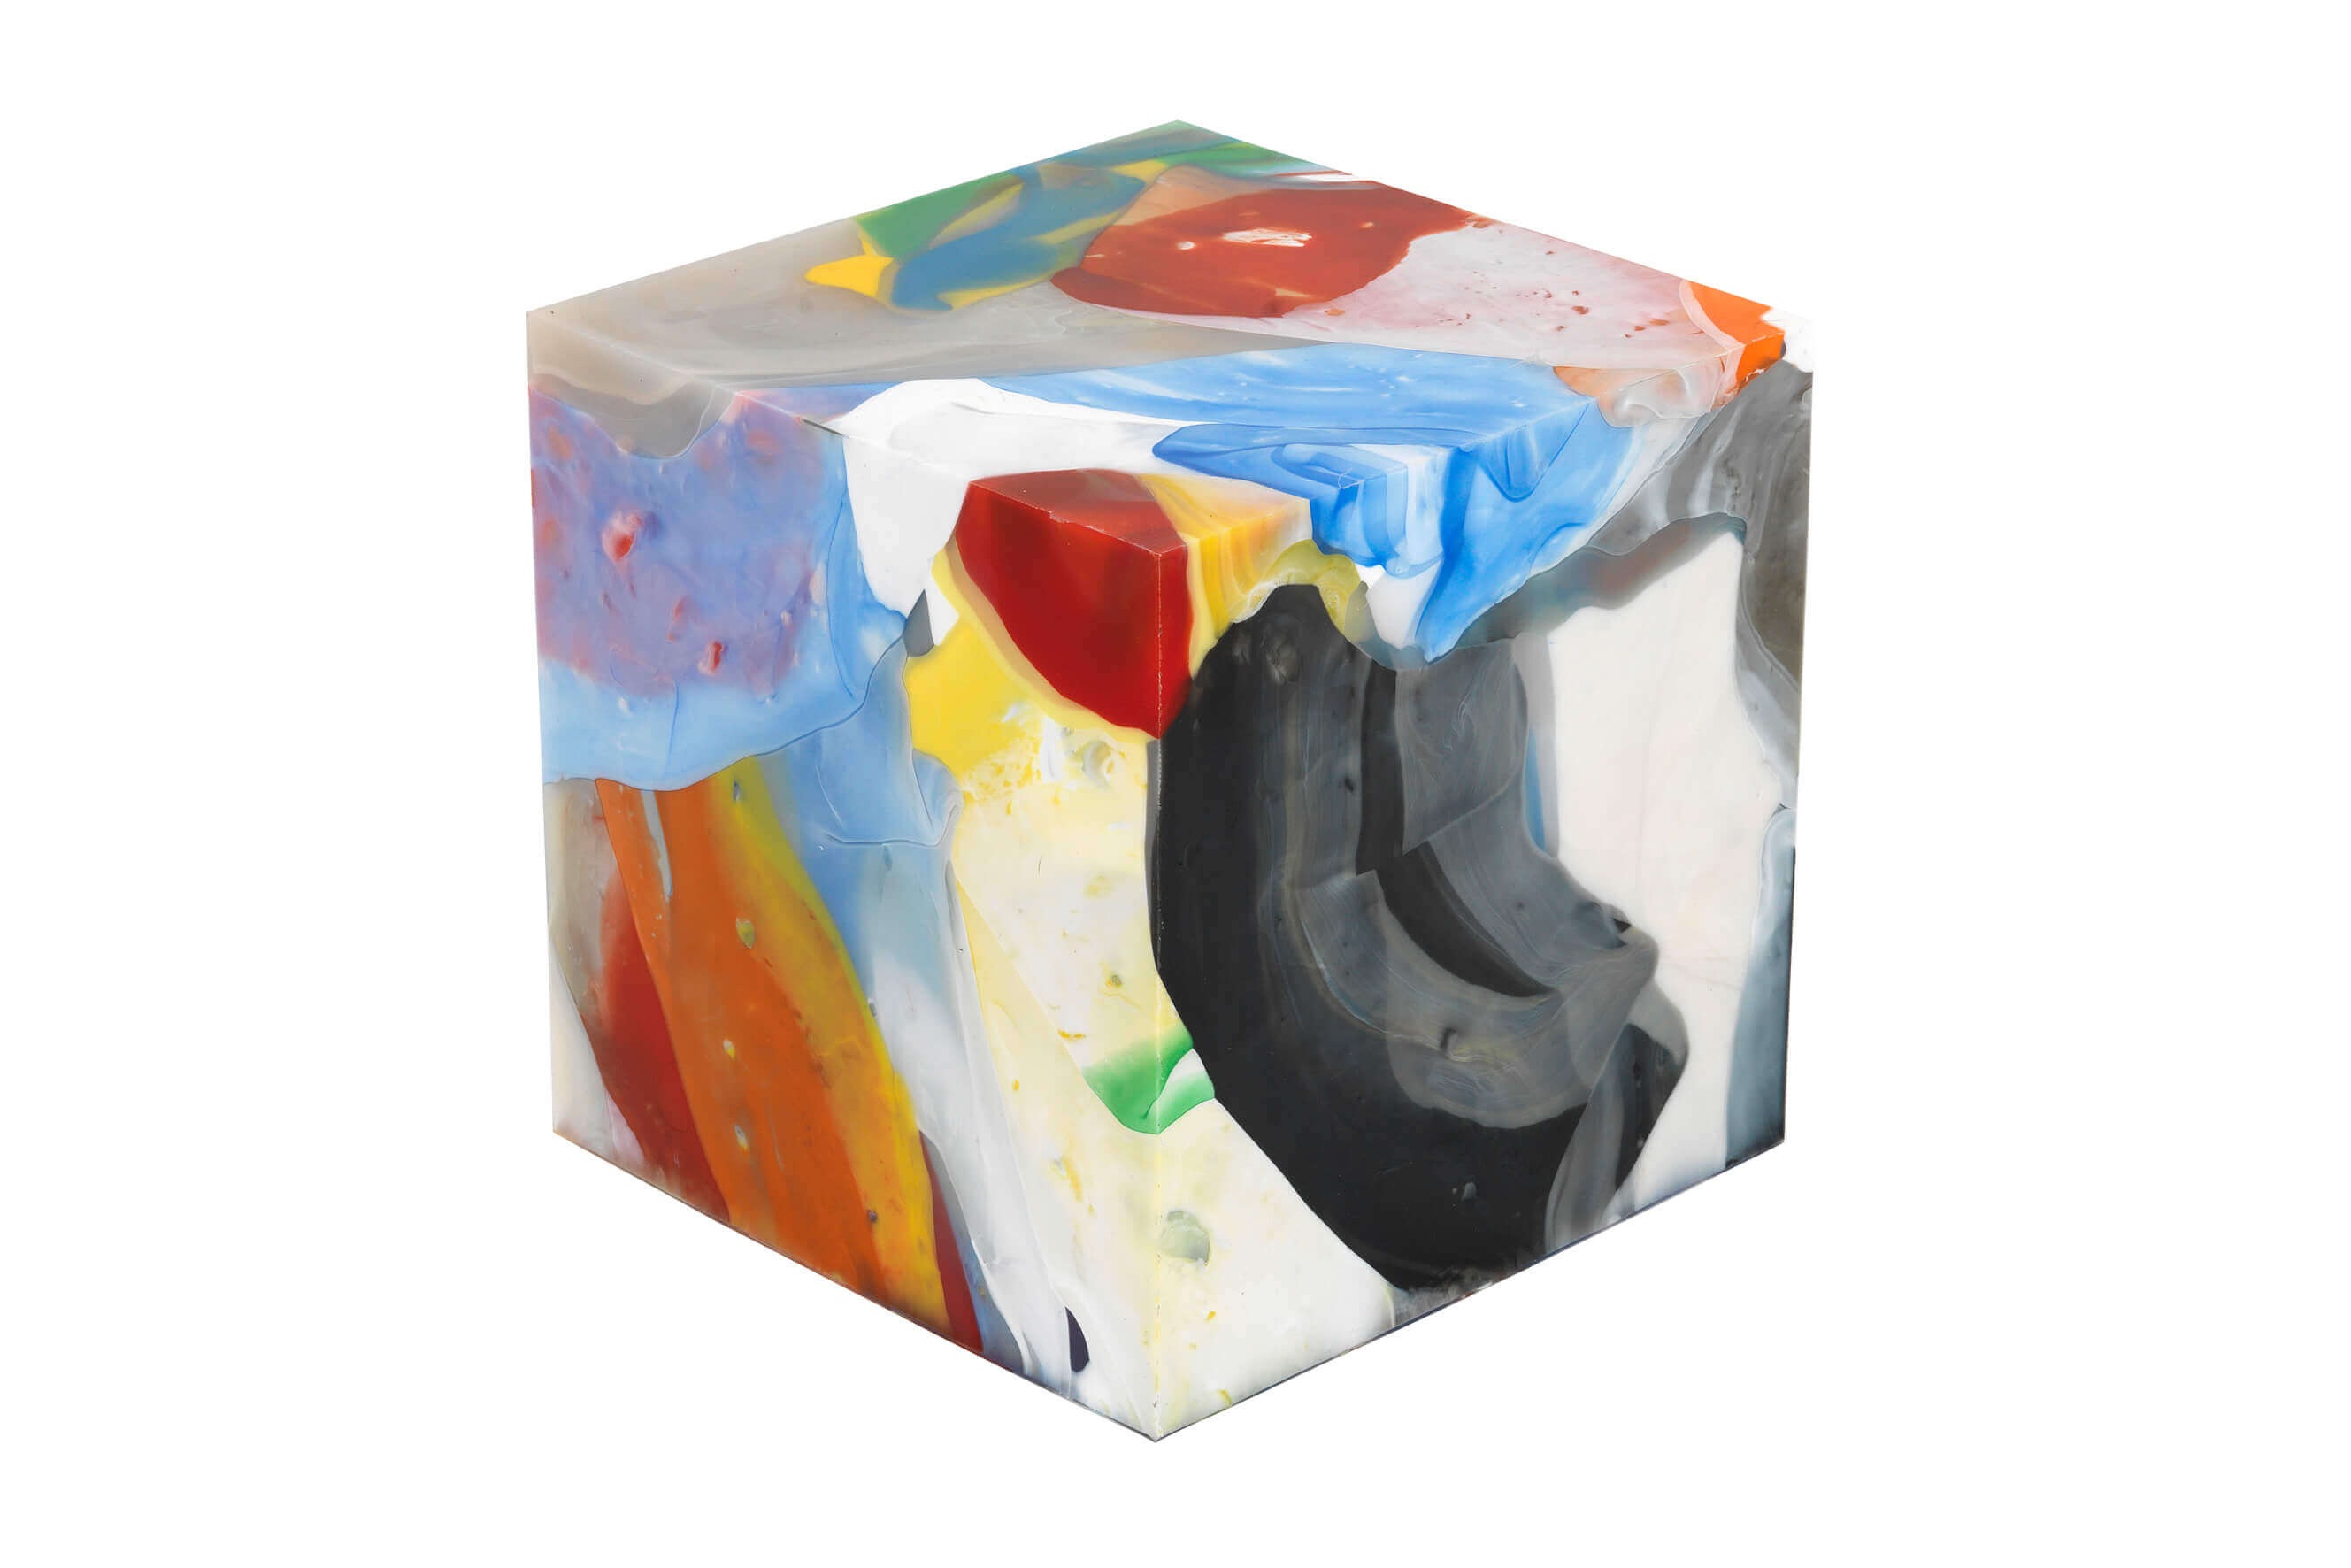 Container #73, 2017/18